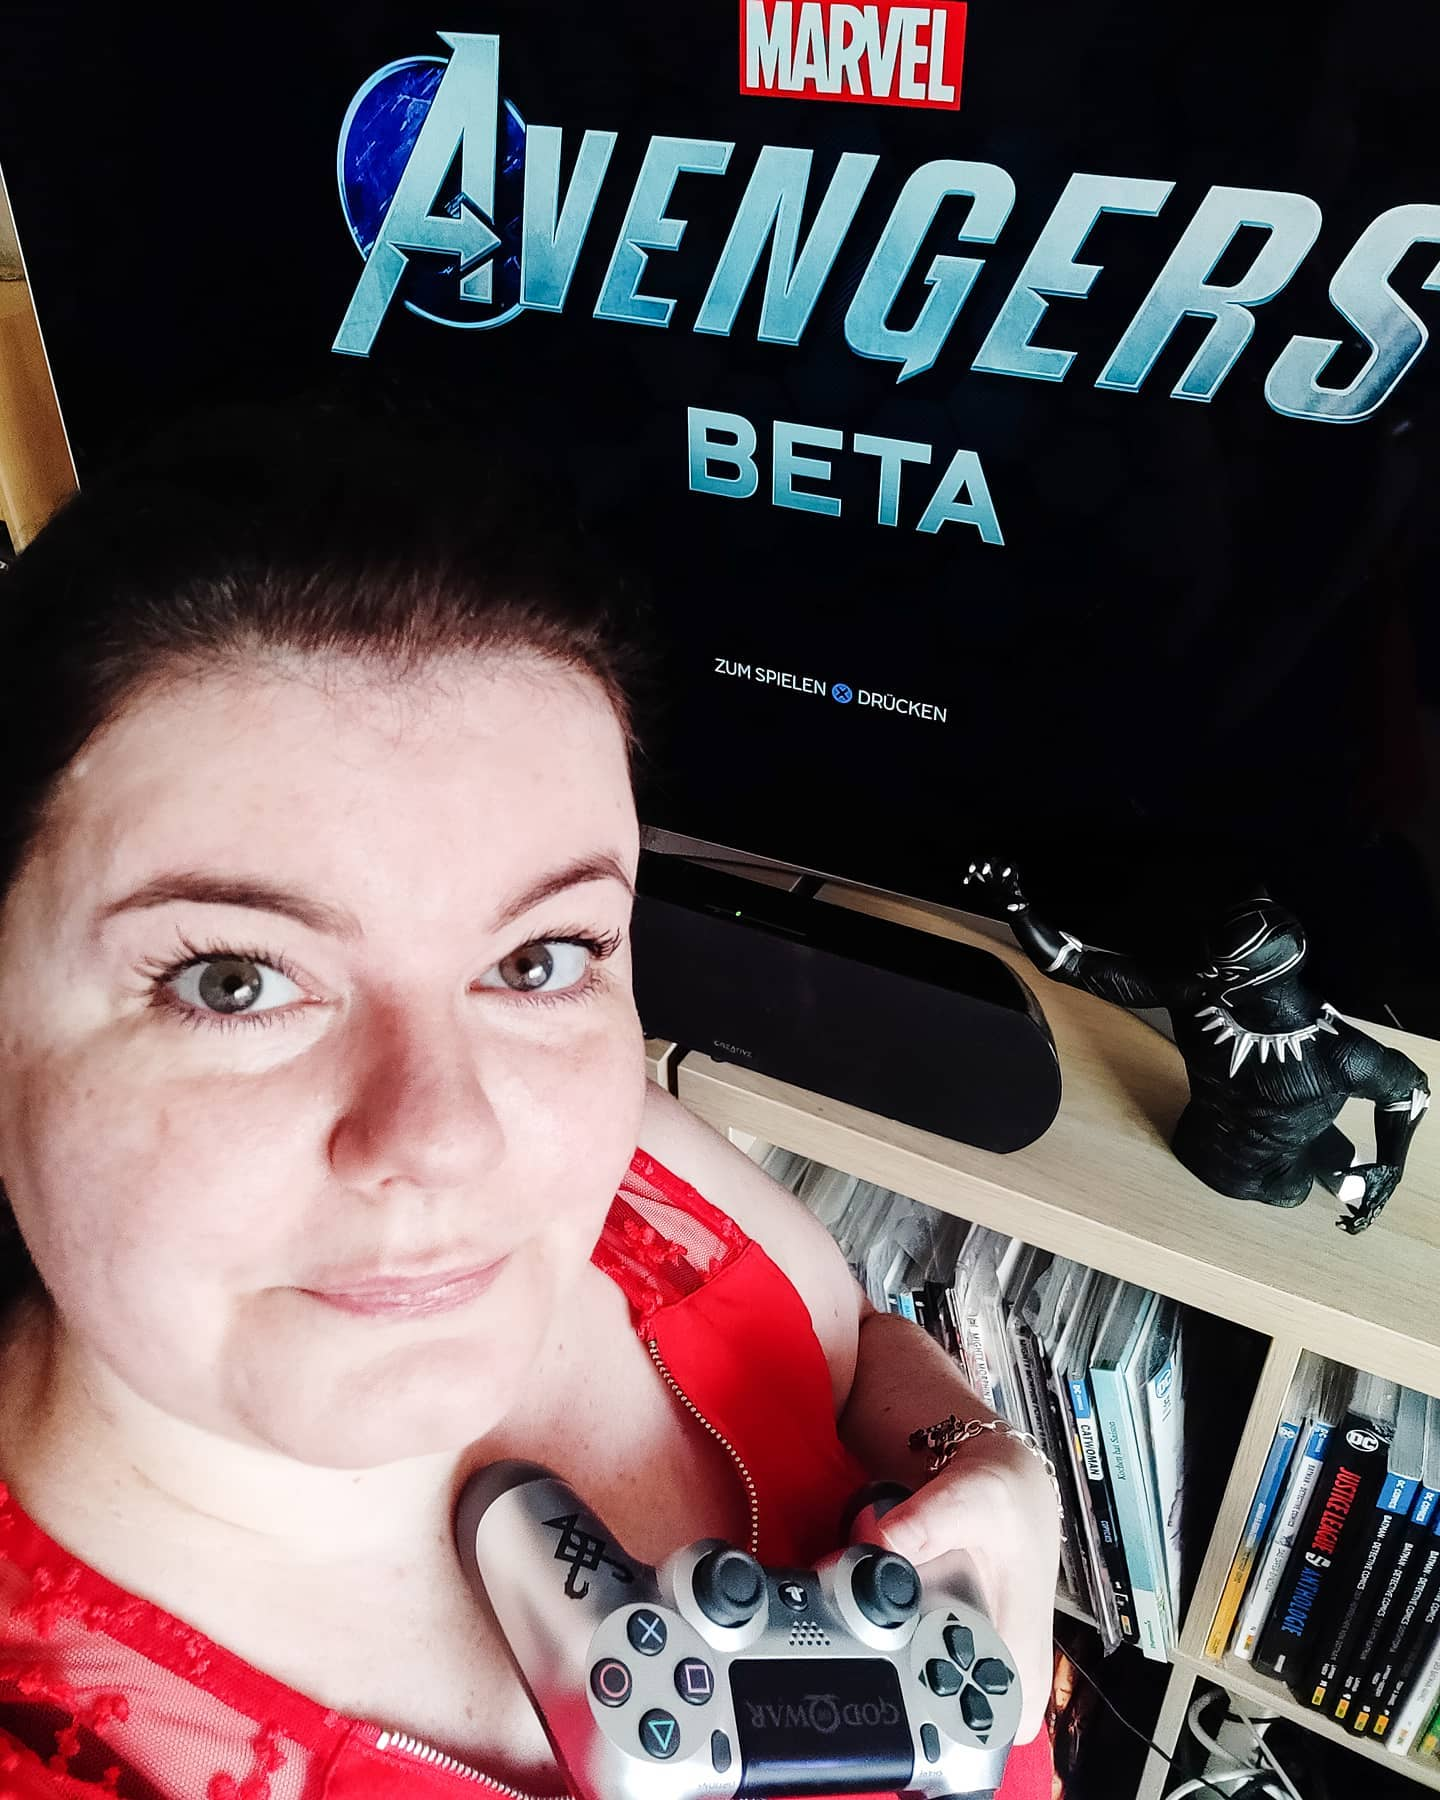 Marvel's Avengers Beta Termine